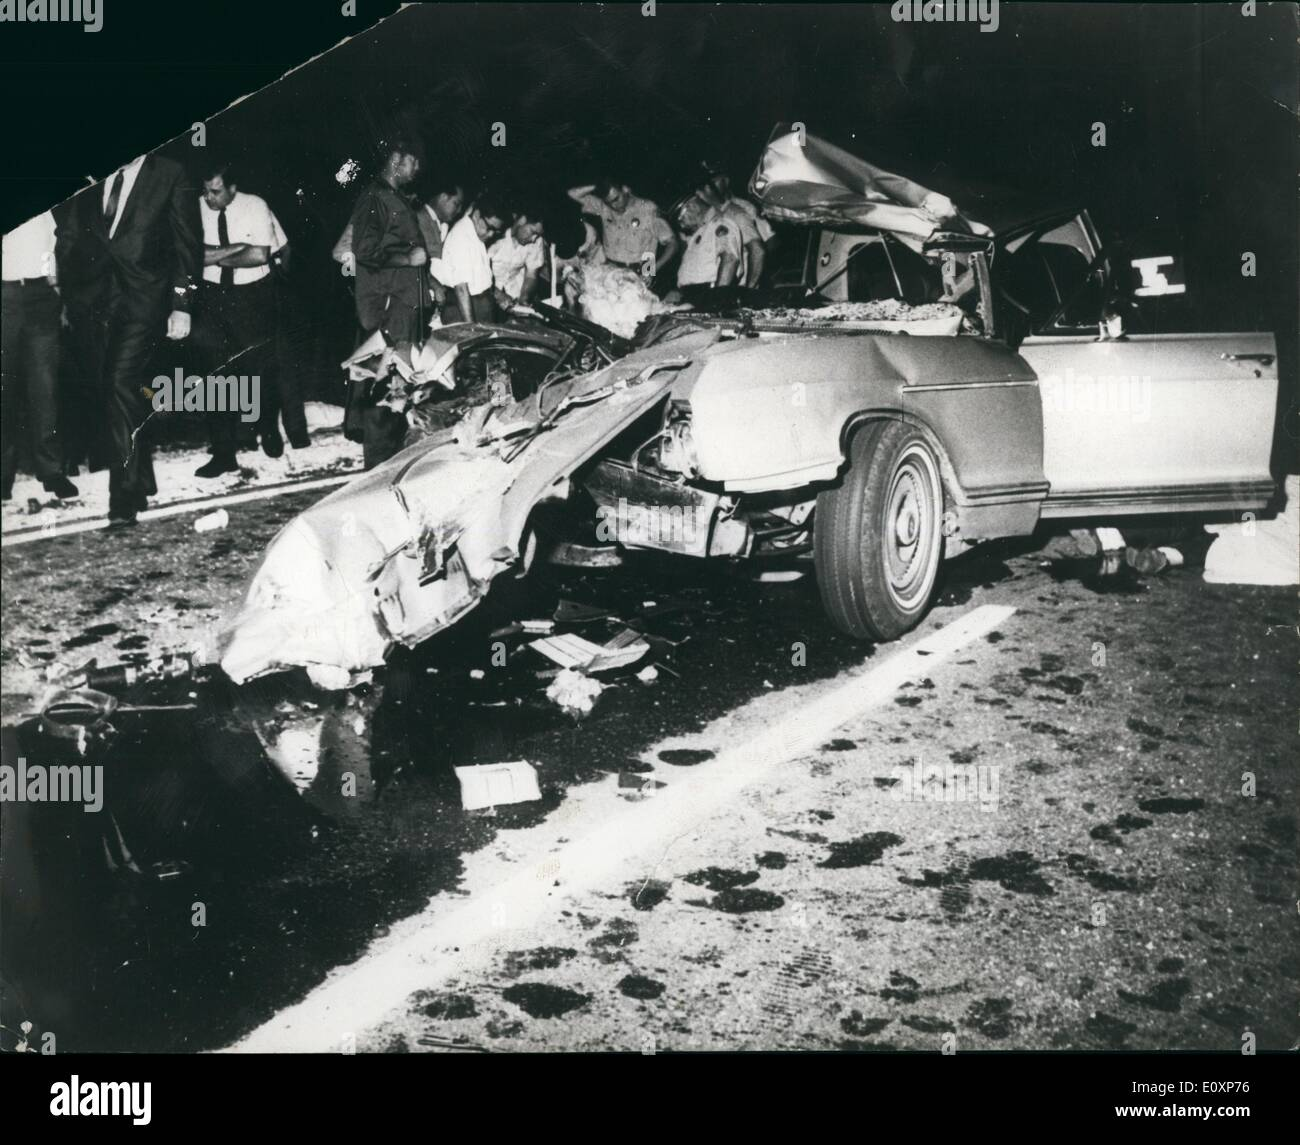 Jul. 07, 1967 - Jayne Mansfield Killed In Car Crash. Photo shows ...